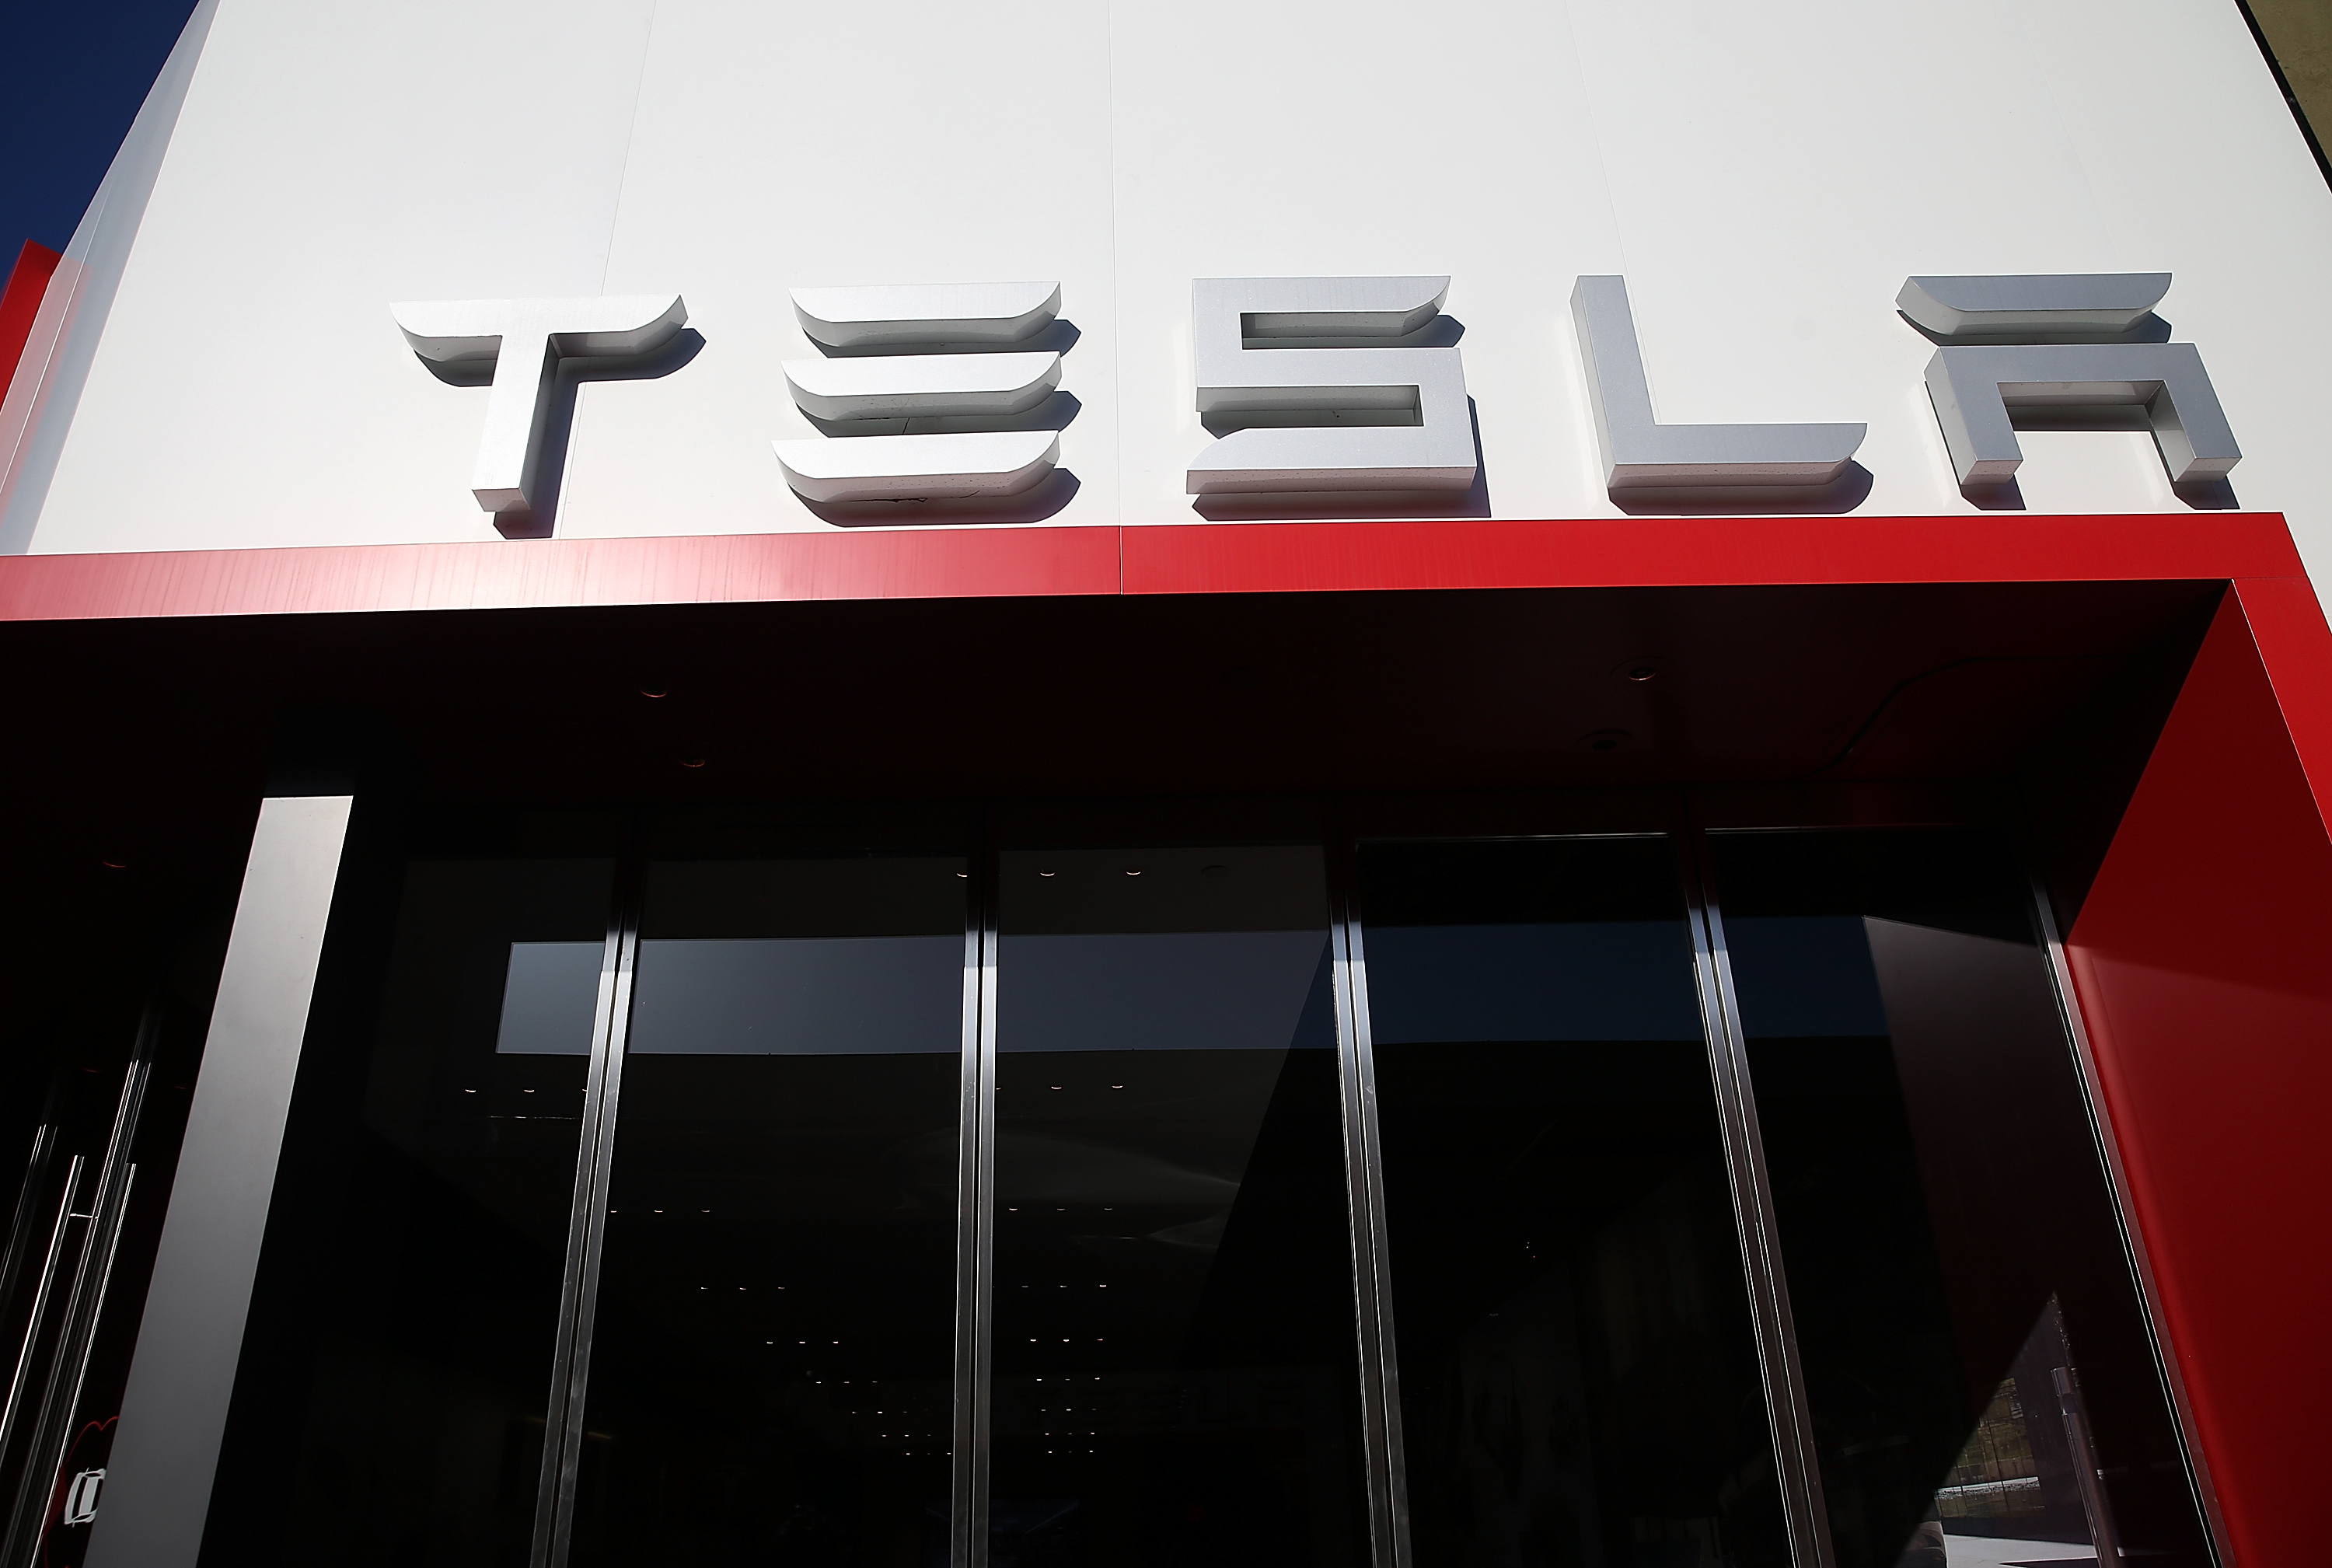 CORTE MADERA, CALIFORNIA - APRIL 04: An exterior view of a Tesla showroom on April 4, 2016 in Corte Madera, California. Worldwide pre-orders for Tesla's upcoming Model 3 have surpassed 275,000 in the first week that pre-orders were made available to the public.   Justin Sullivan/Getty Images/AFP